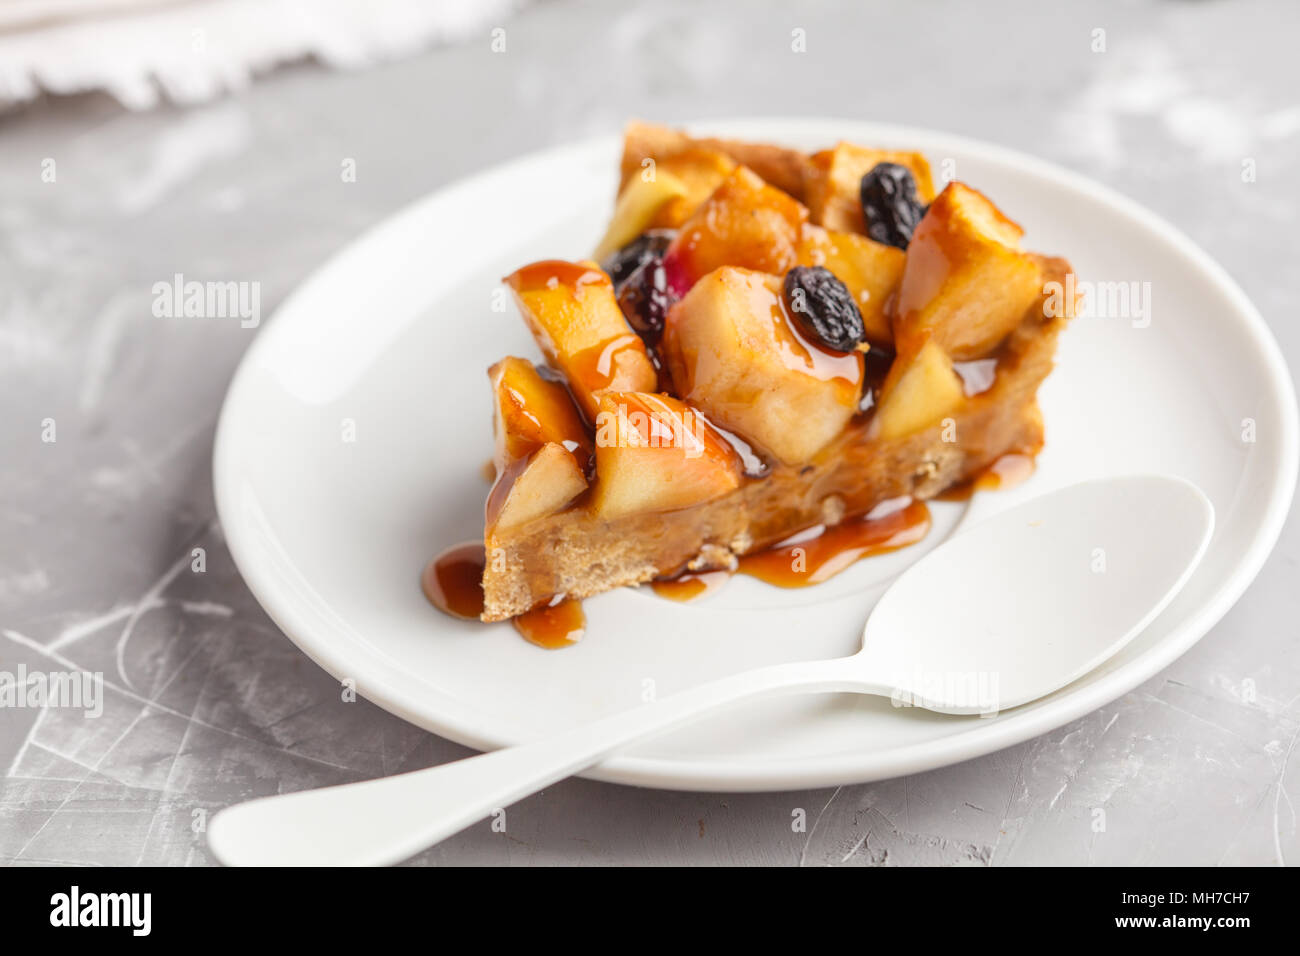 Piece of vegan apple pie with cinnamon, raisins and caramel, gray background. - Stock Image